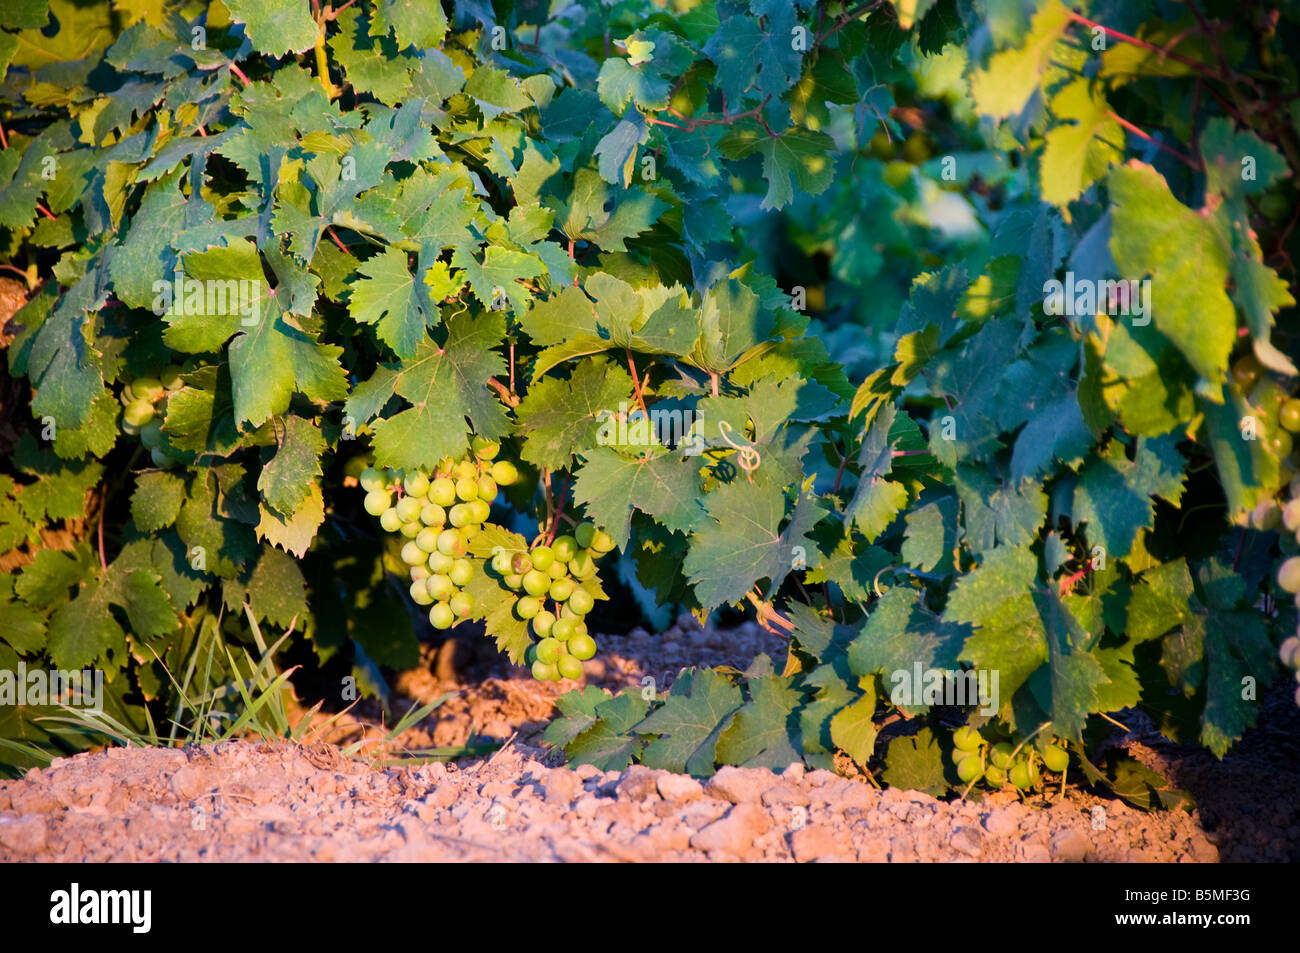 Moscato grapes known locally as Zibibbo grapes, Island of Pantelleria, Sicily, Italy. - Stock Image